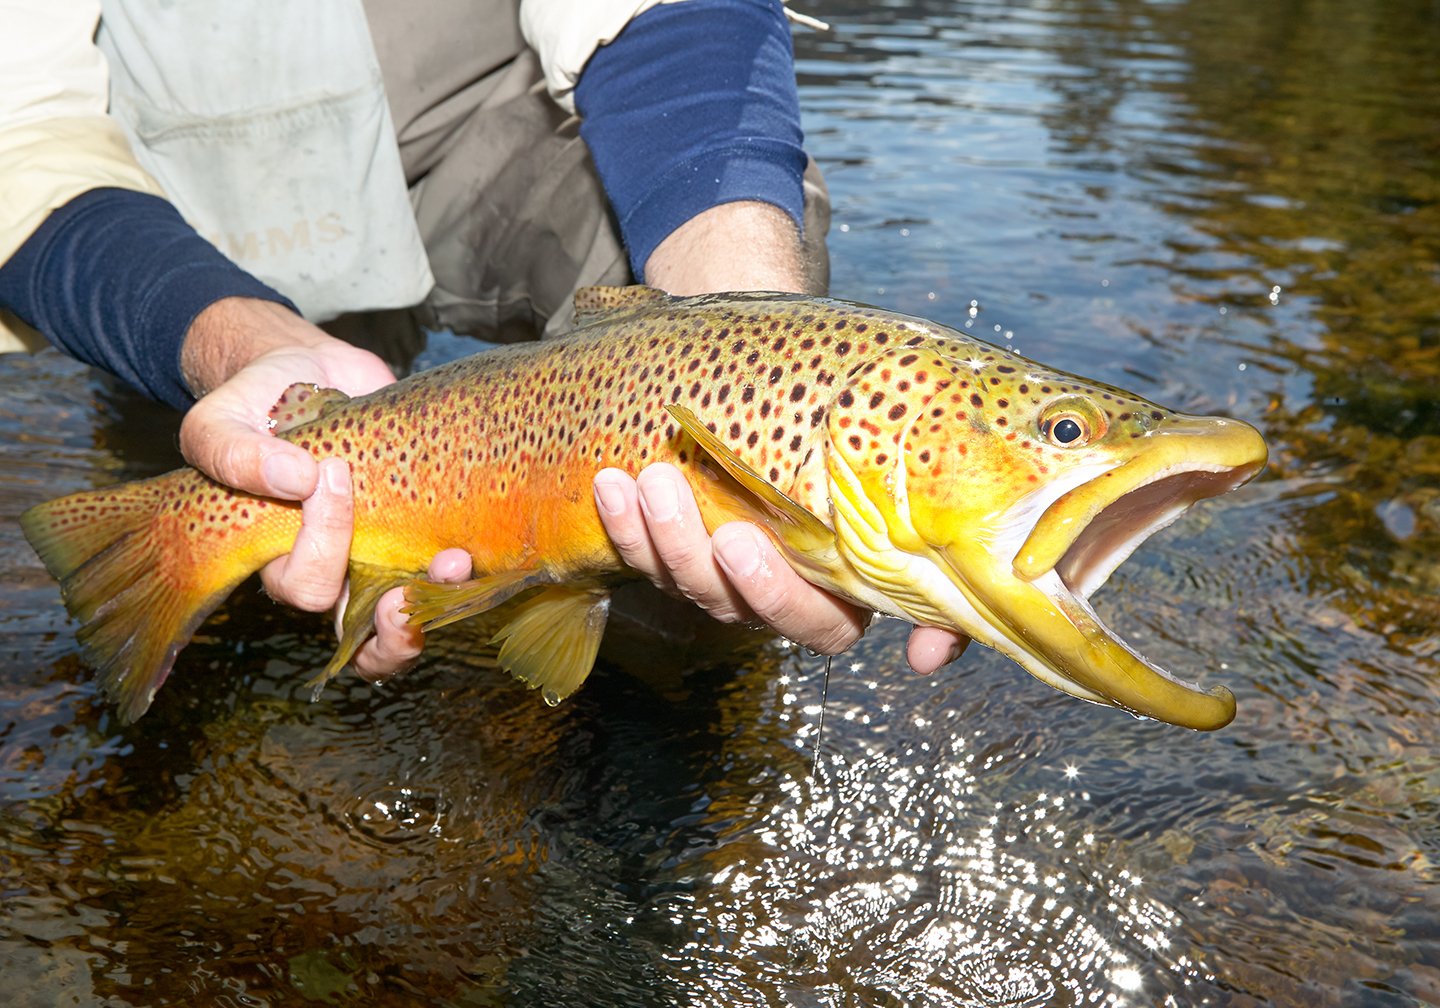 An angler holding a Brown Trout out of the water.